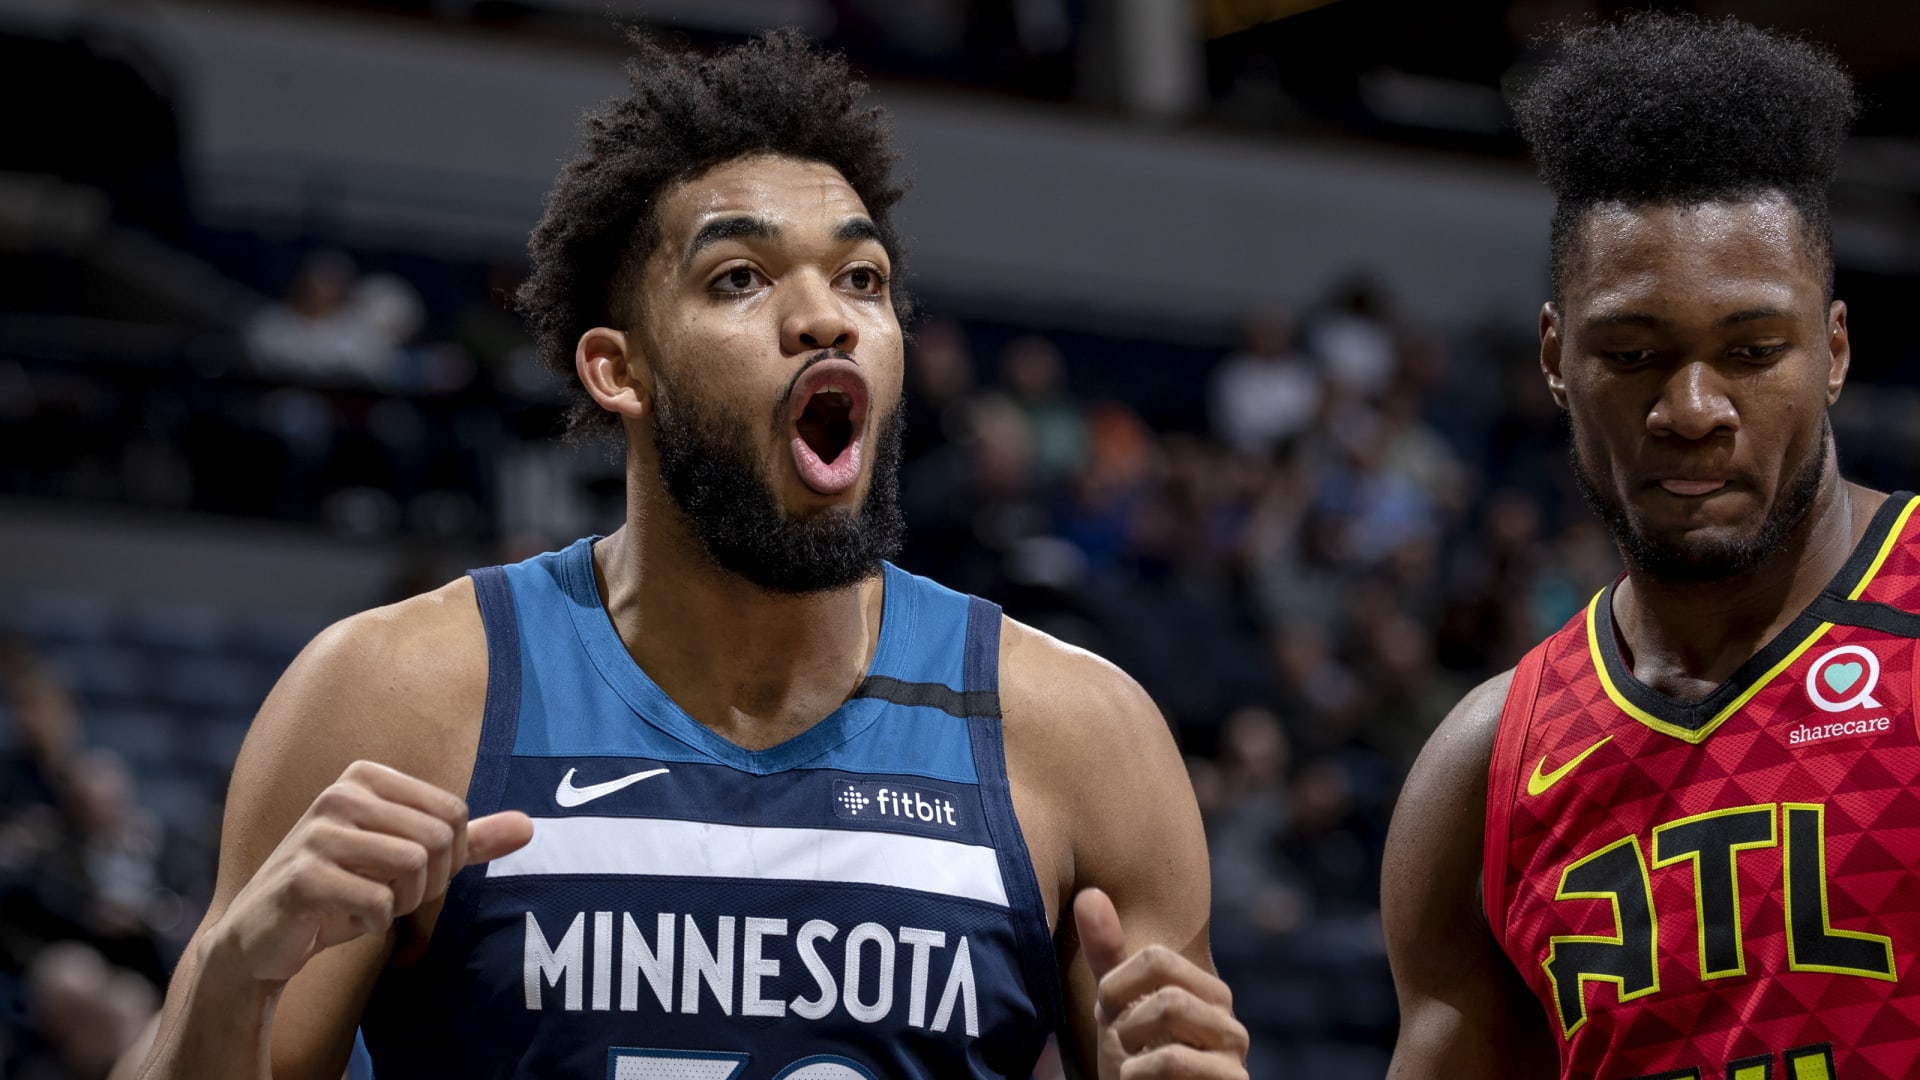 What do the Minnesota Timberwolves need in order to be a contender?